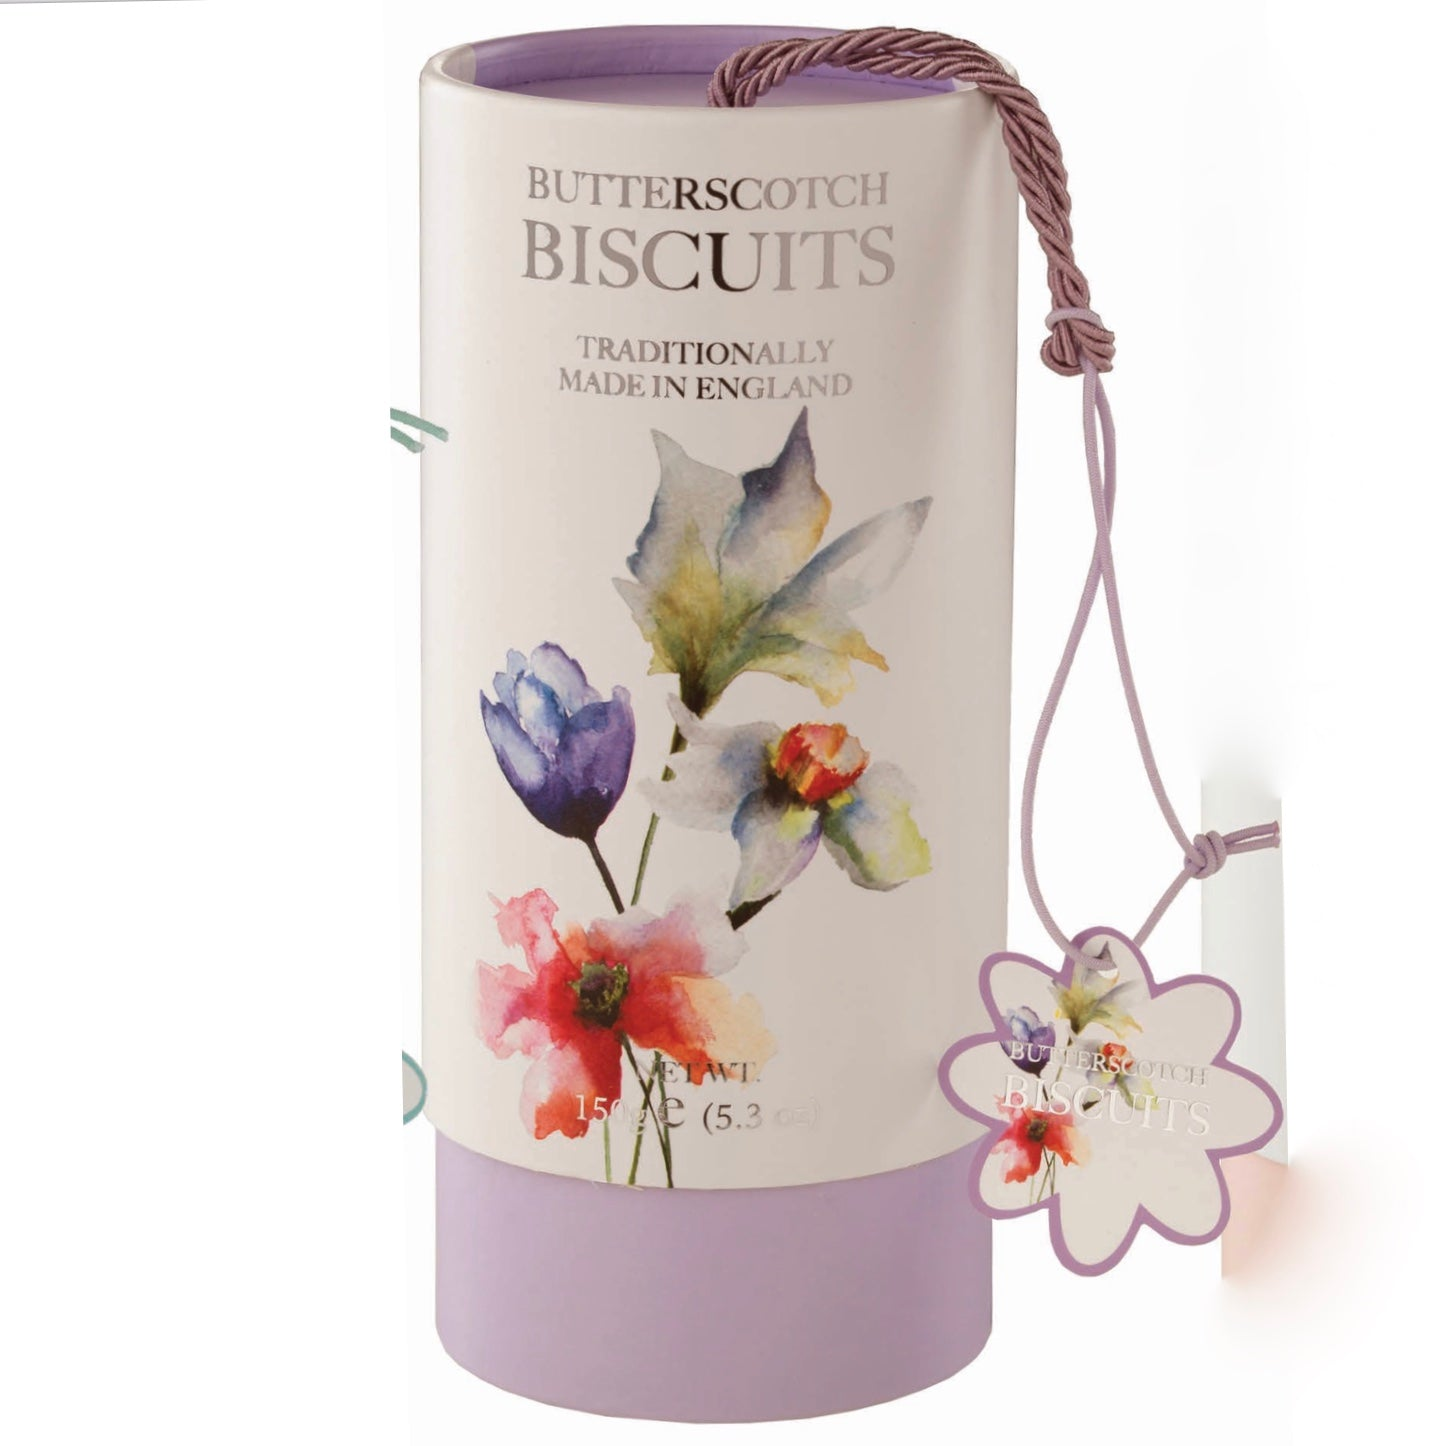 Farmhouse Floral Biscuit Canister - Butterscotch